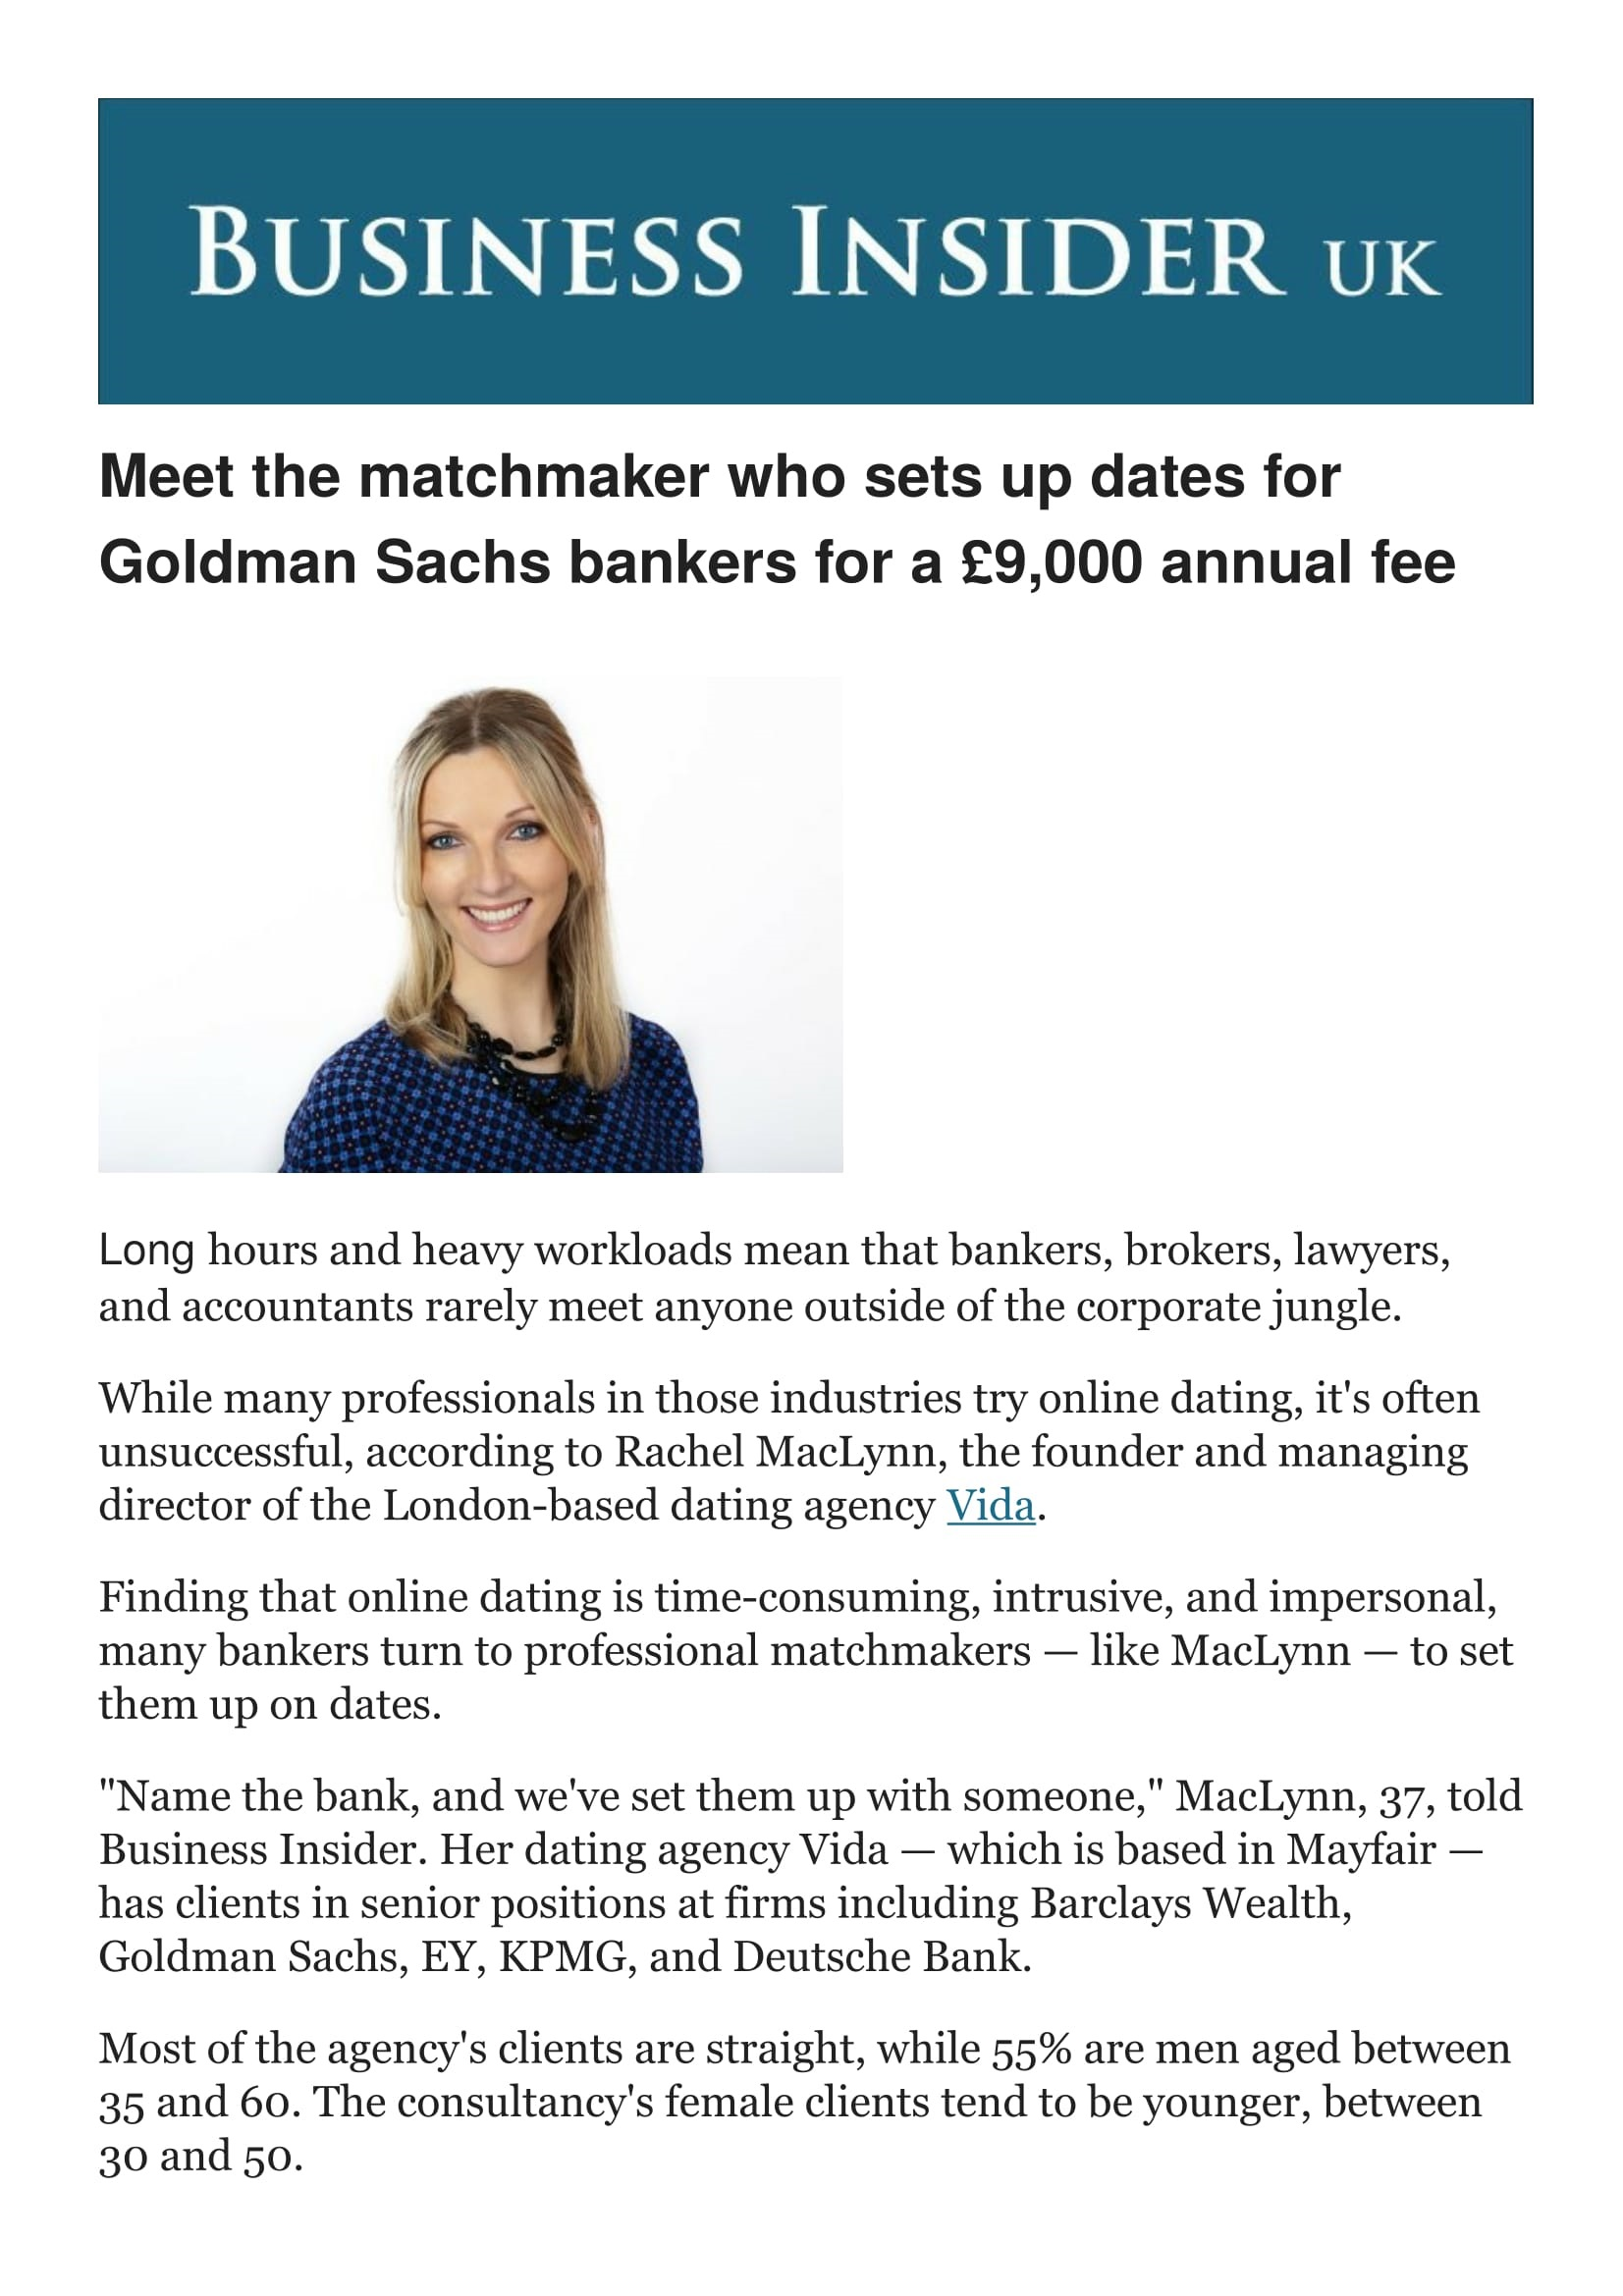 matchmaker business insider UK